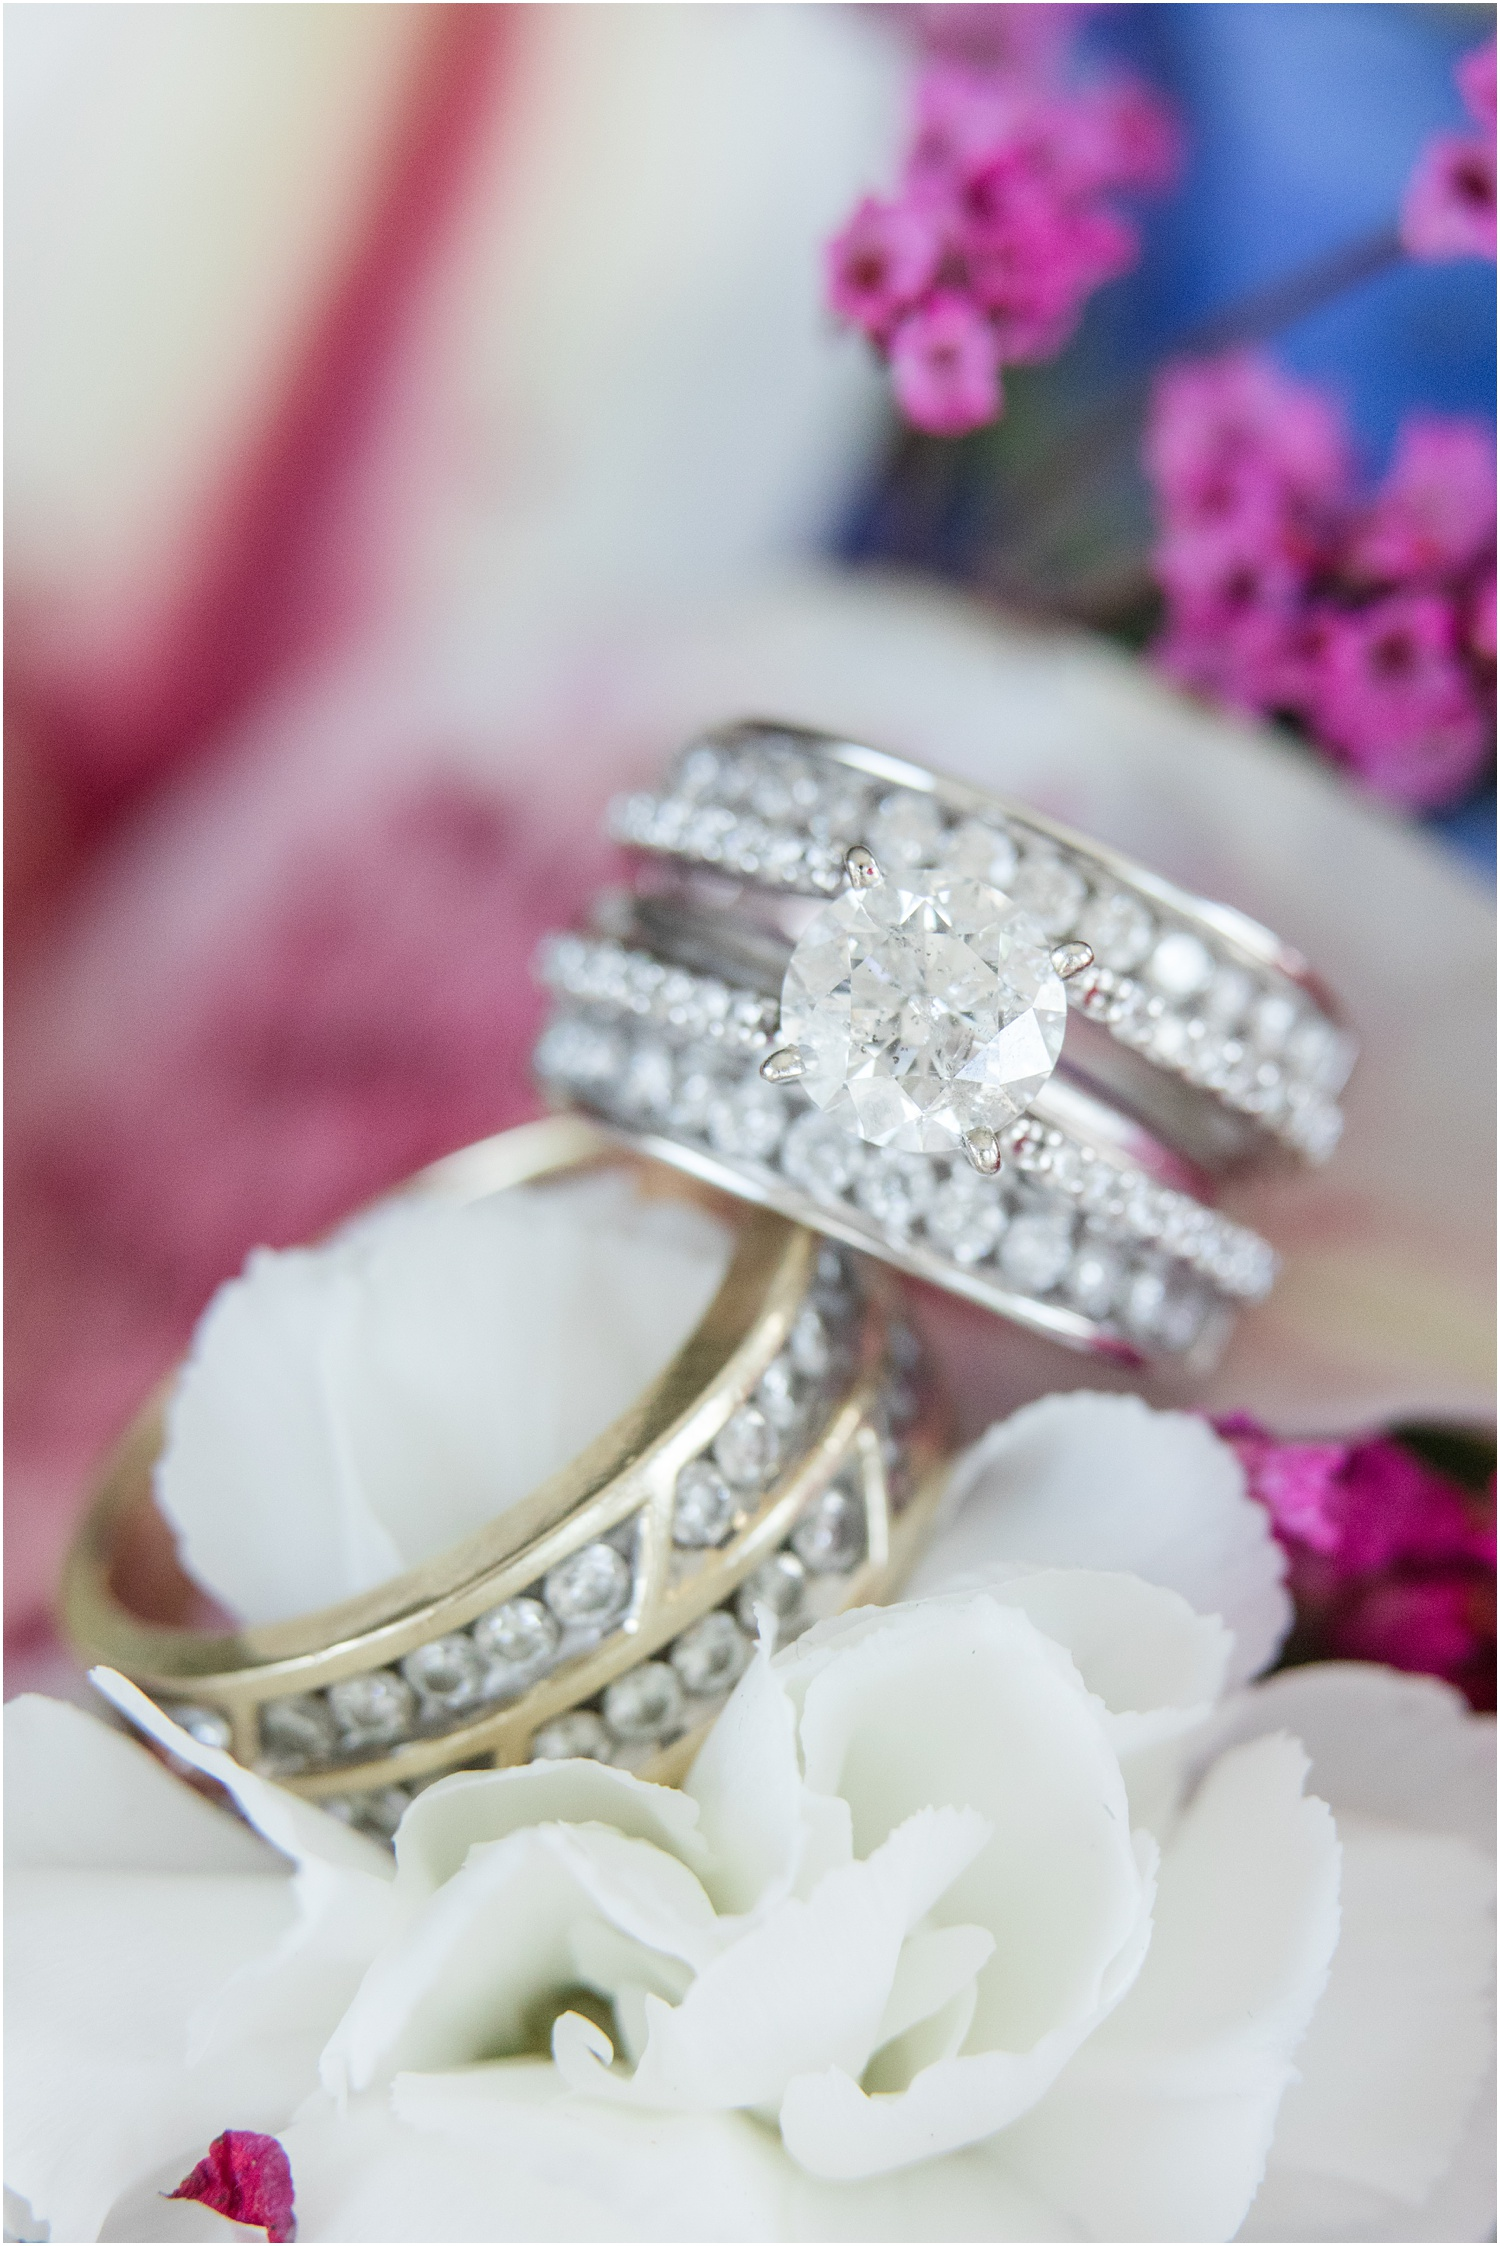 Wedding rings on colorful floral arrangement.